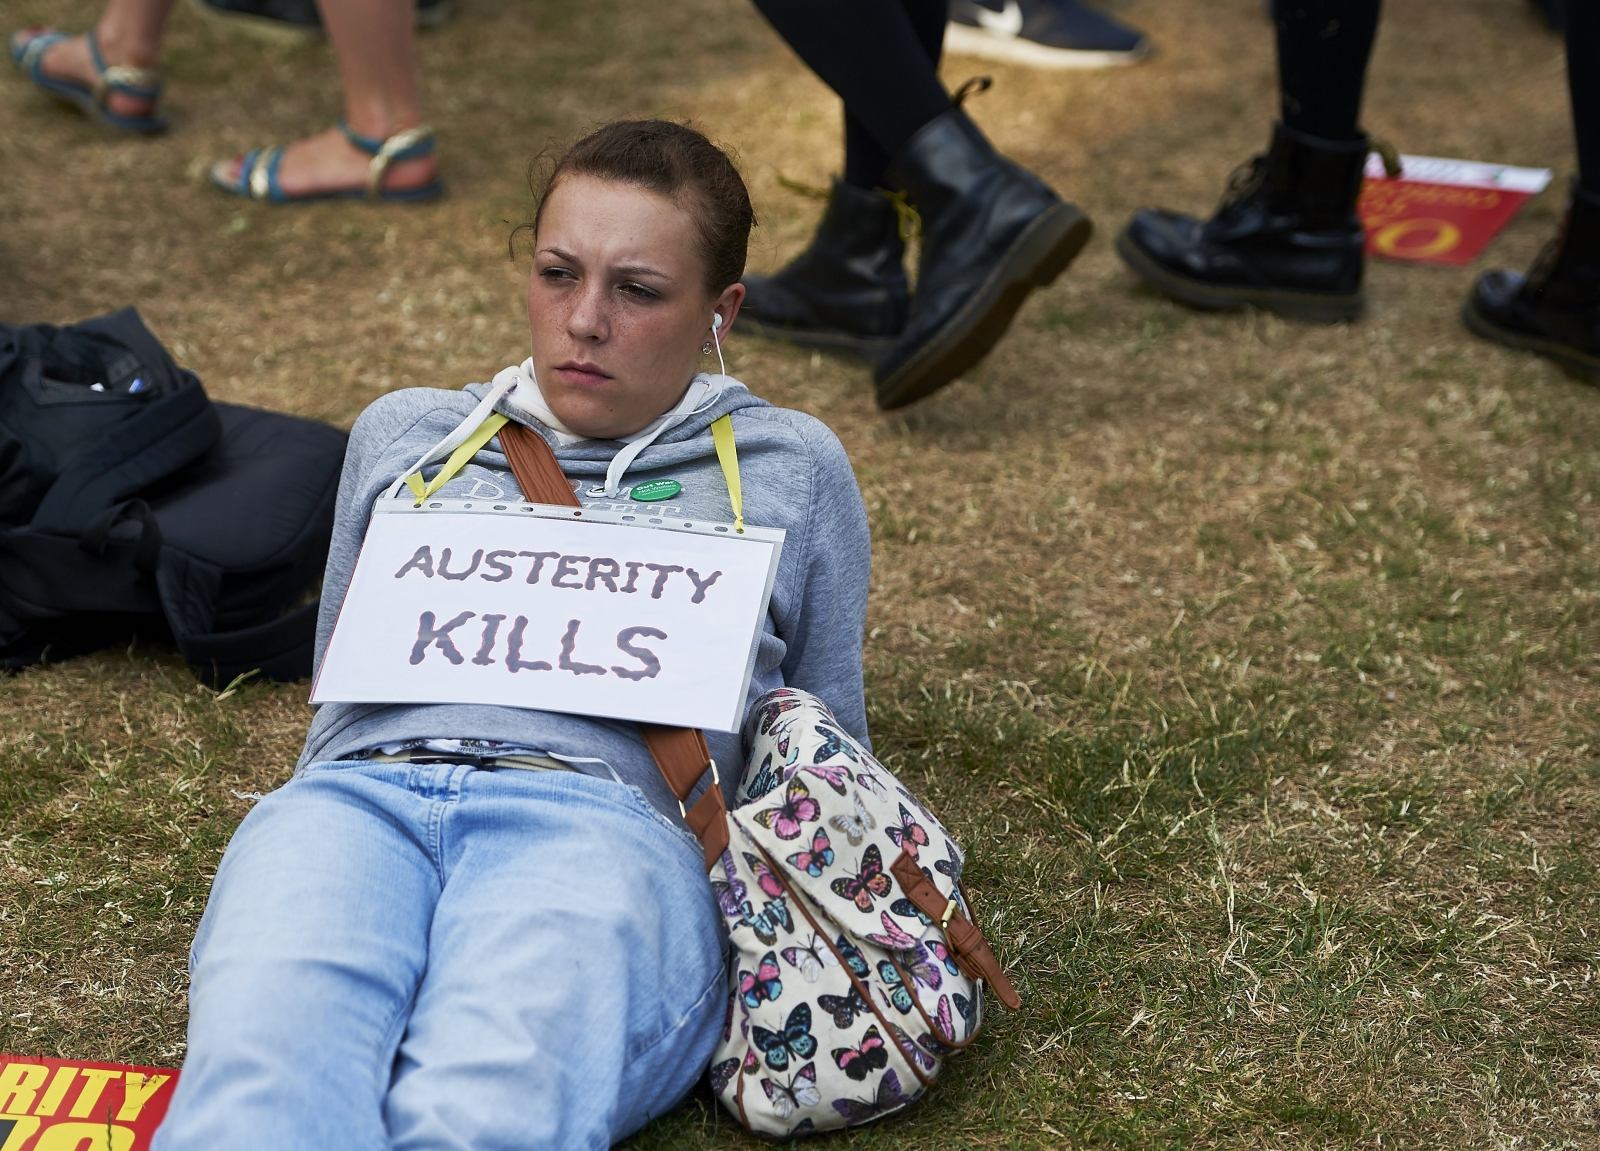 Anti-austerity protestor